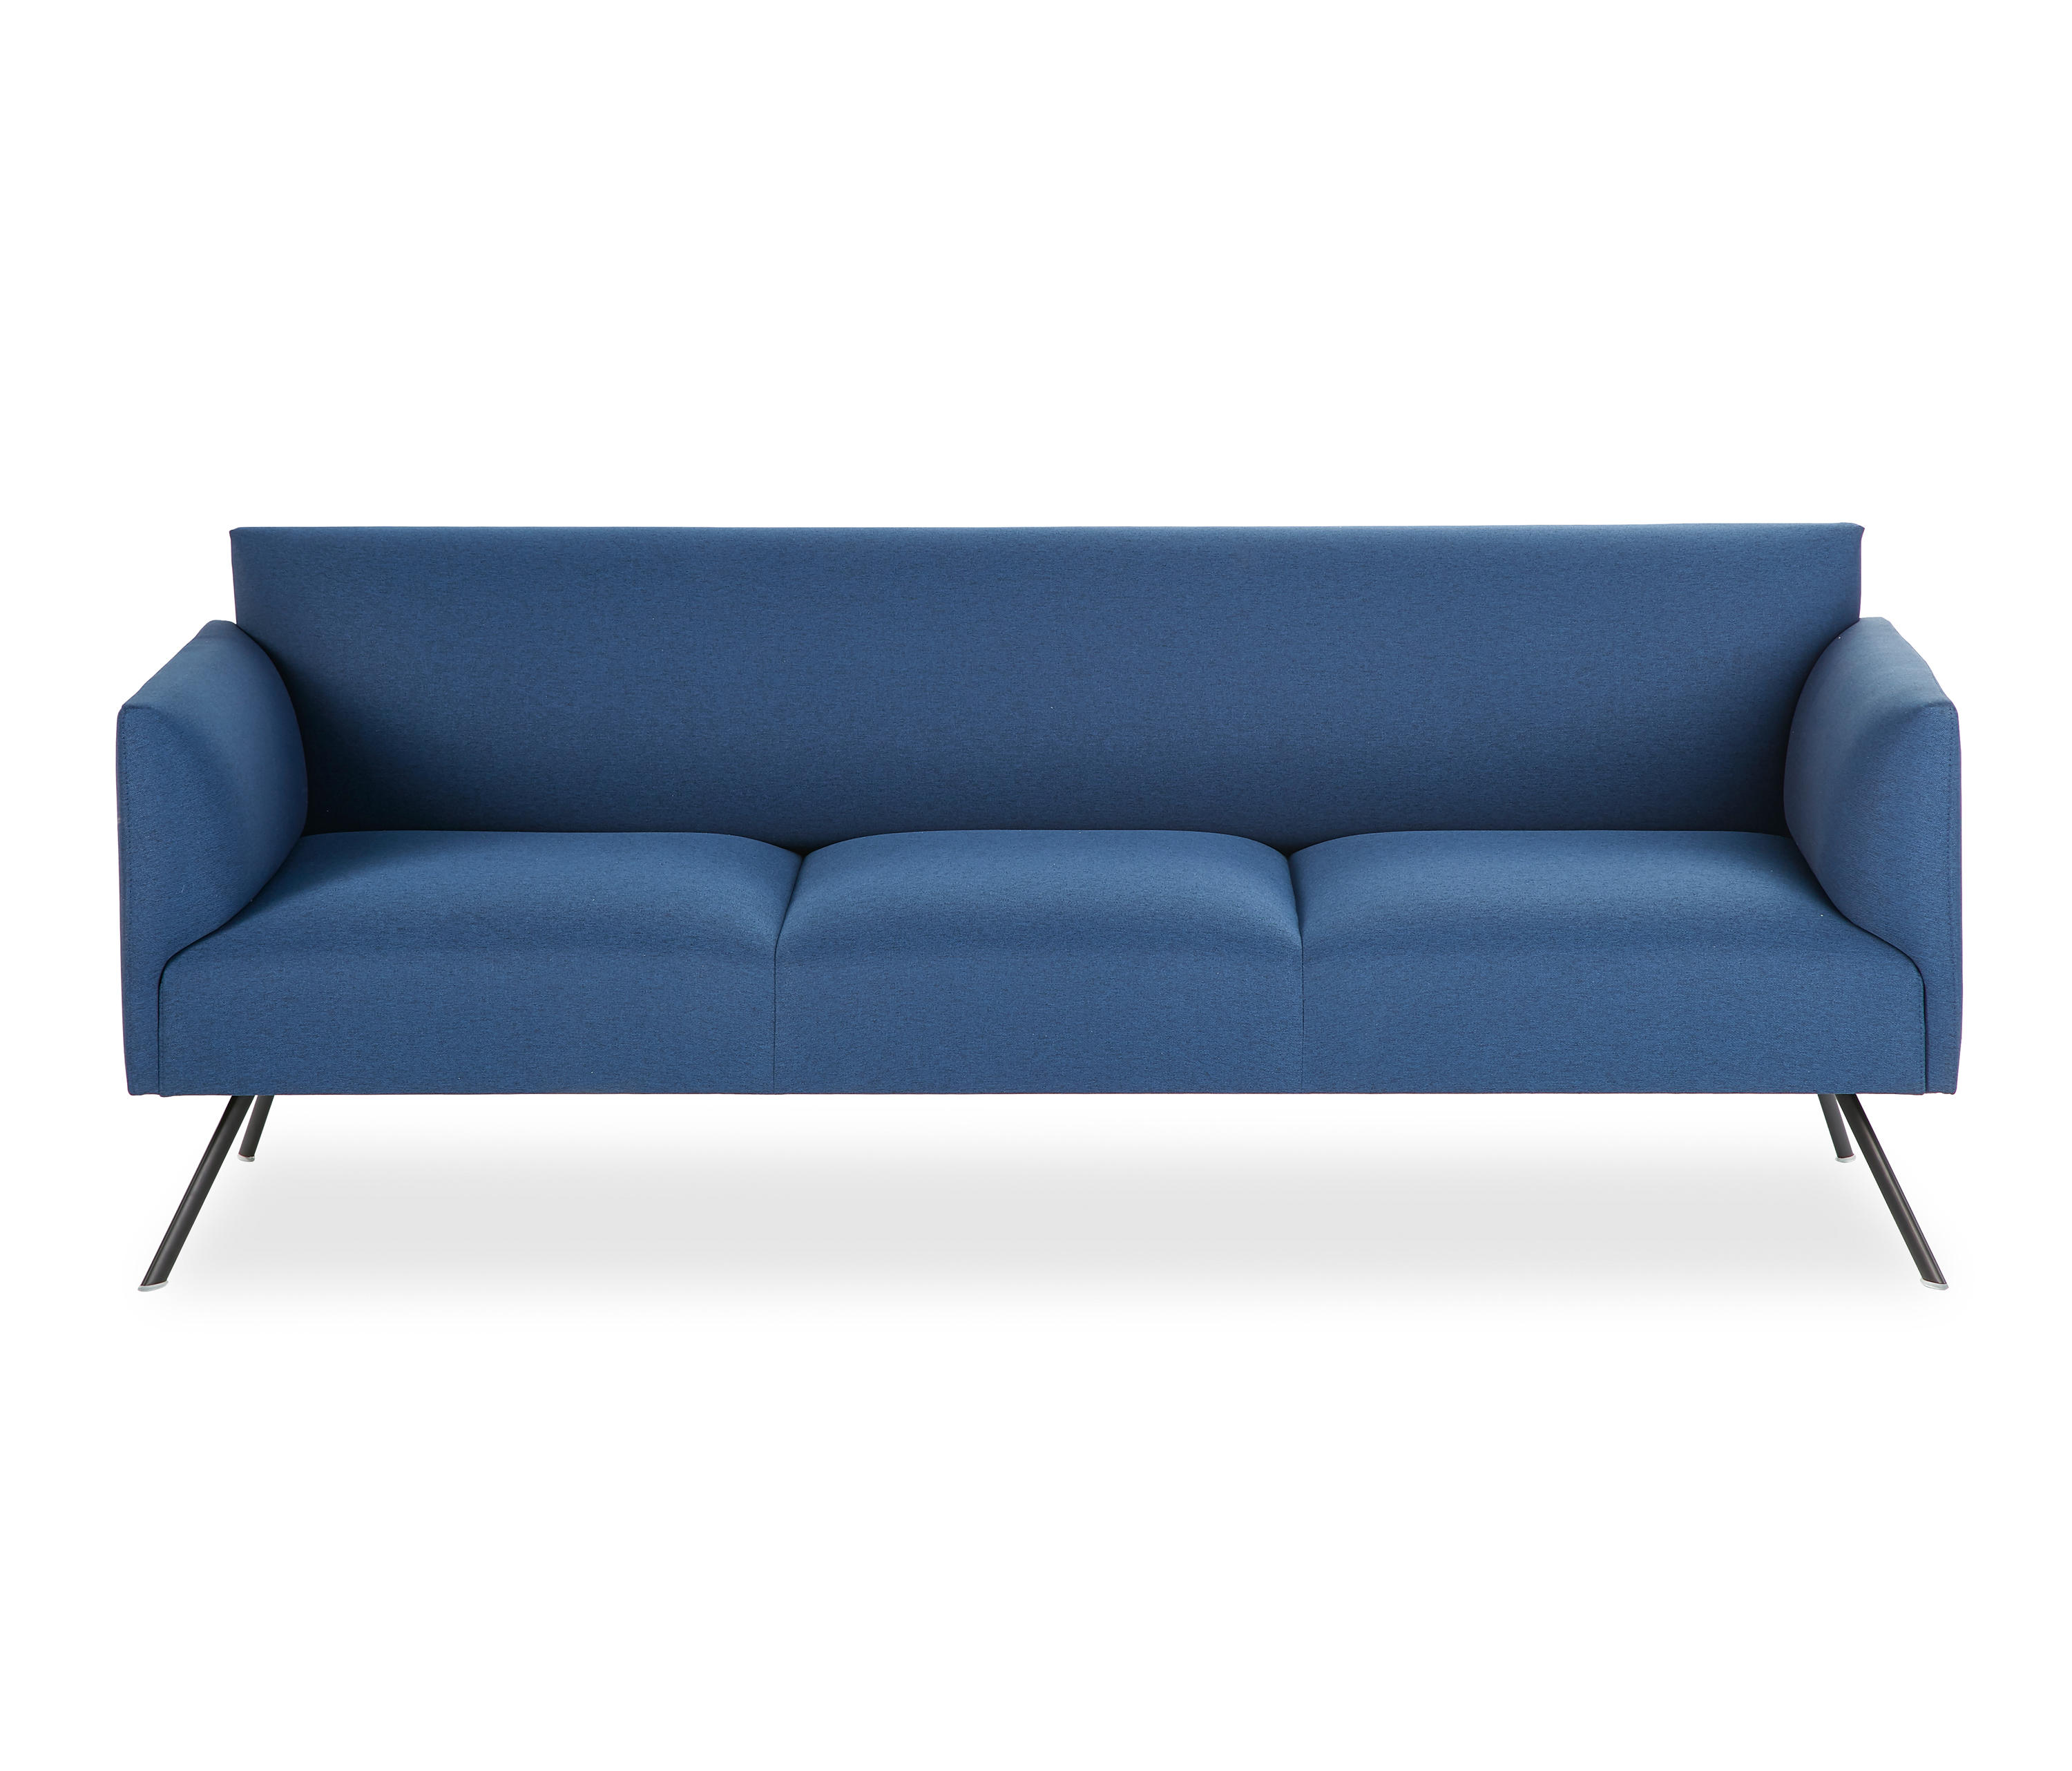 Led Sofas From B T Design Architonic